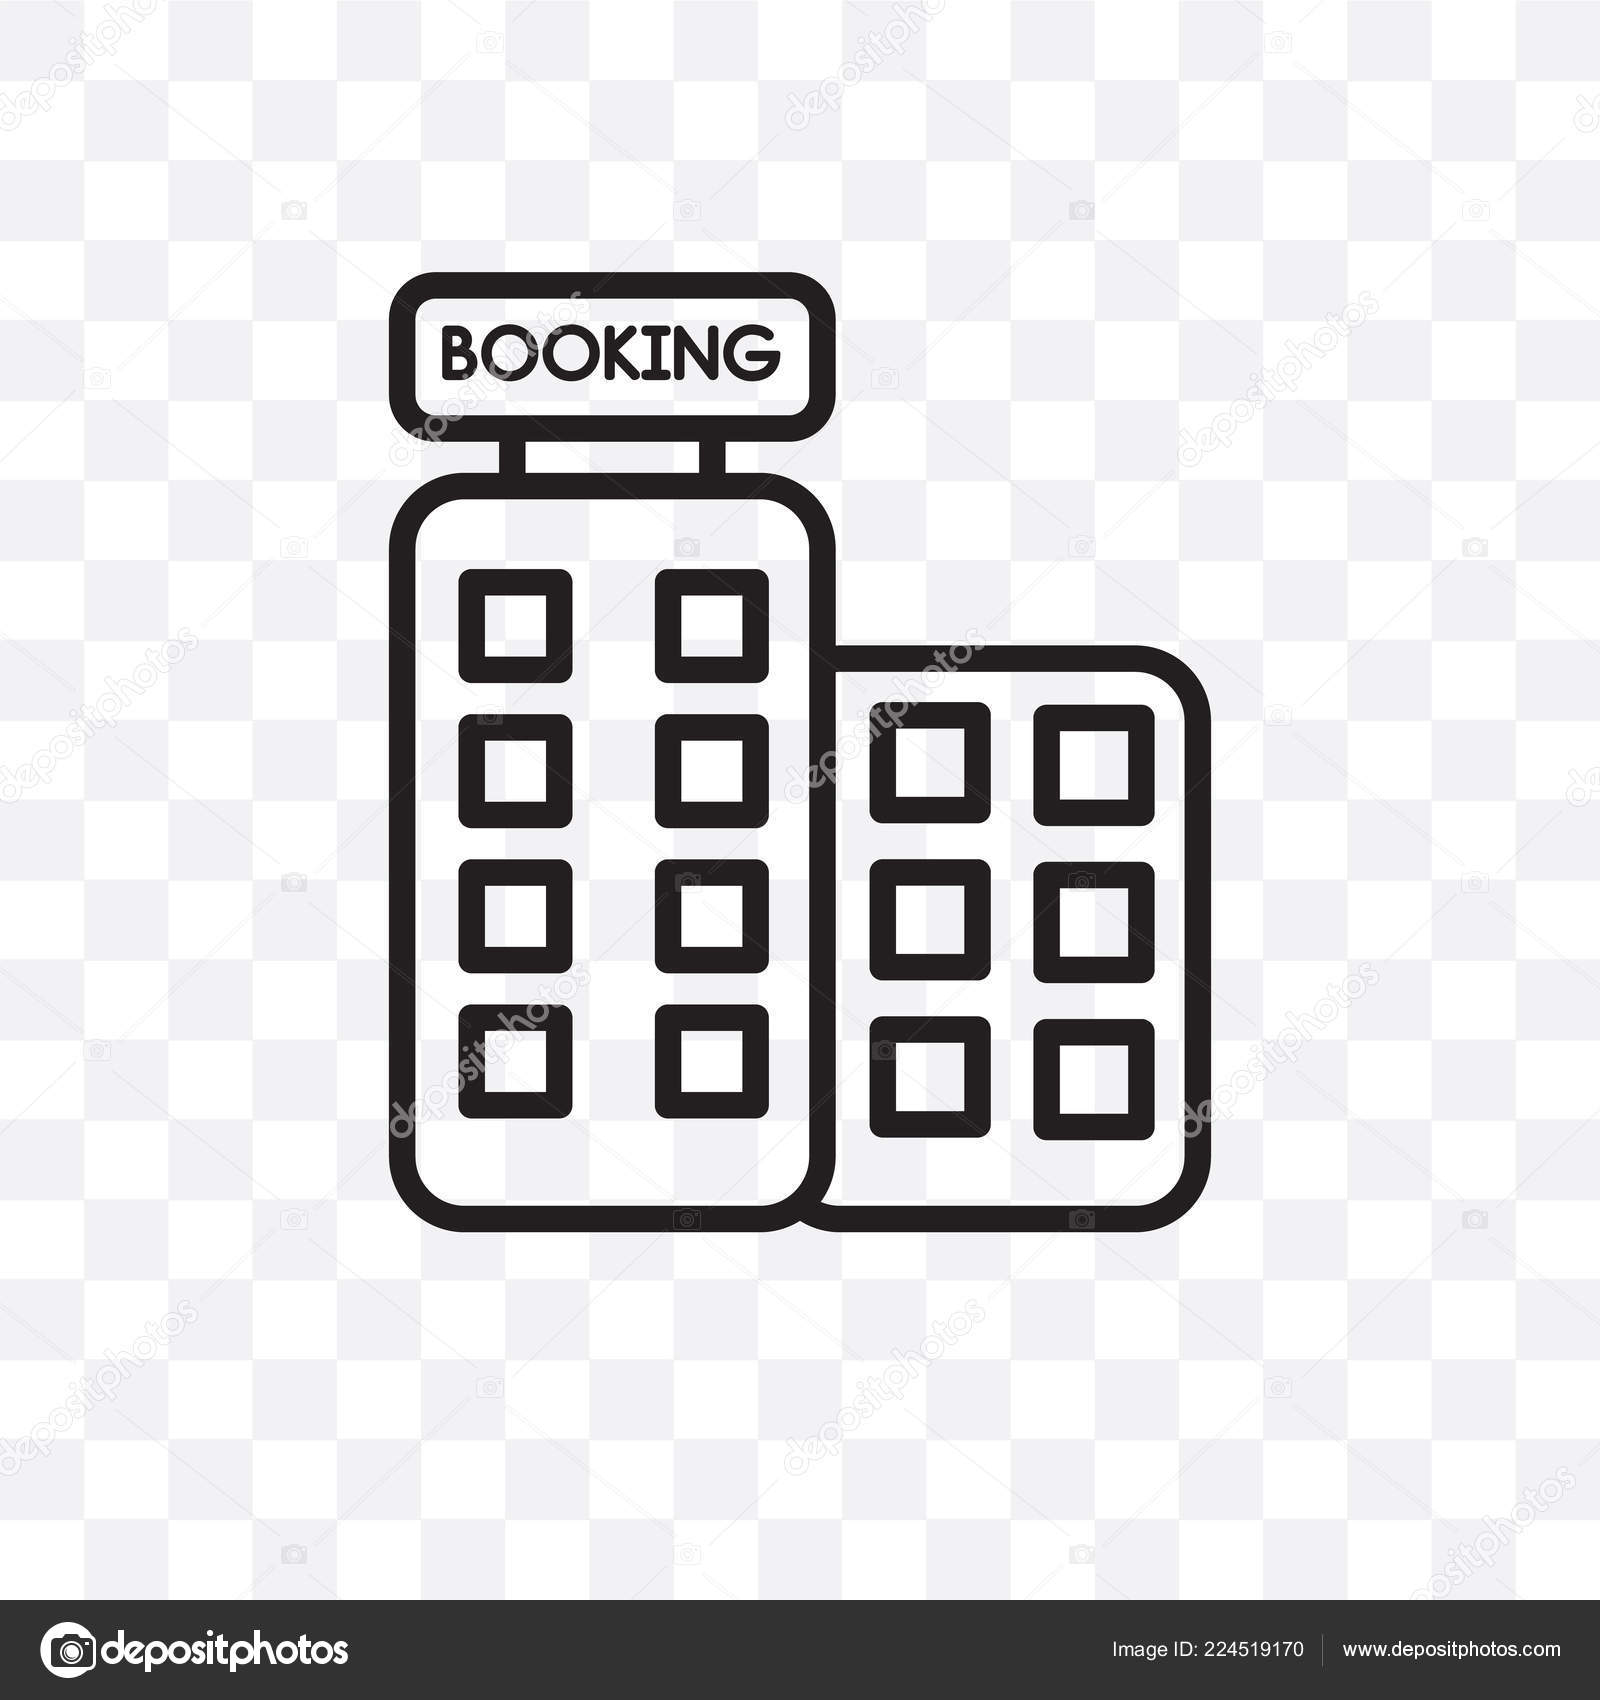 Booking Vector Linear Icon Isolated Transparent Background